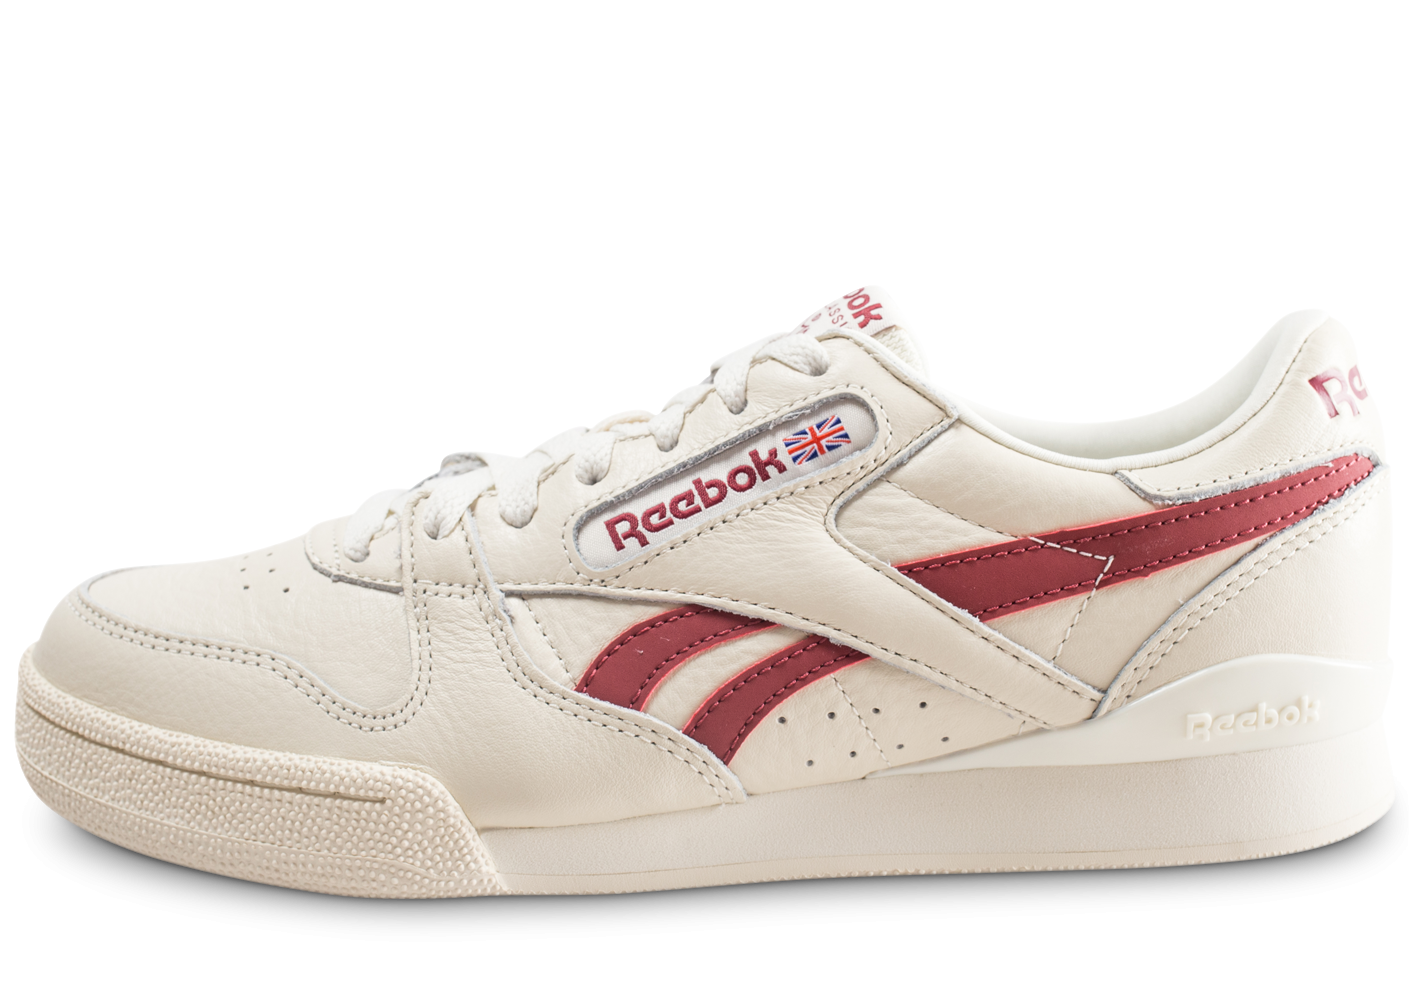 3bf3e602a4c6d Reebok Phase 1 Pro blanche et rouge - Chaussures Baskets homme - Chausport